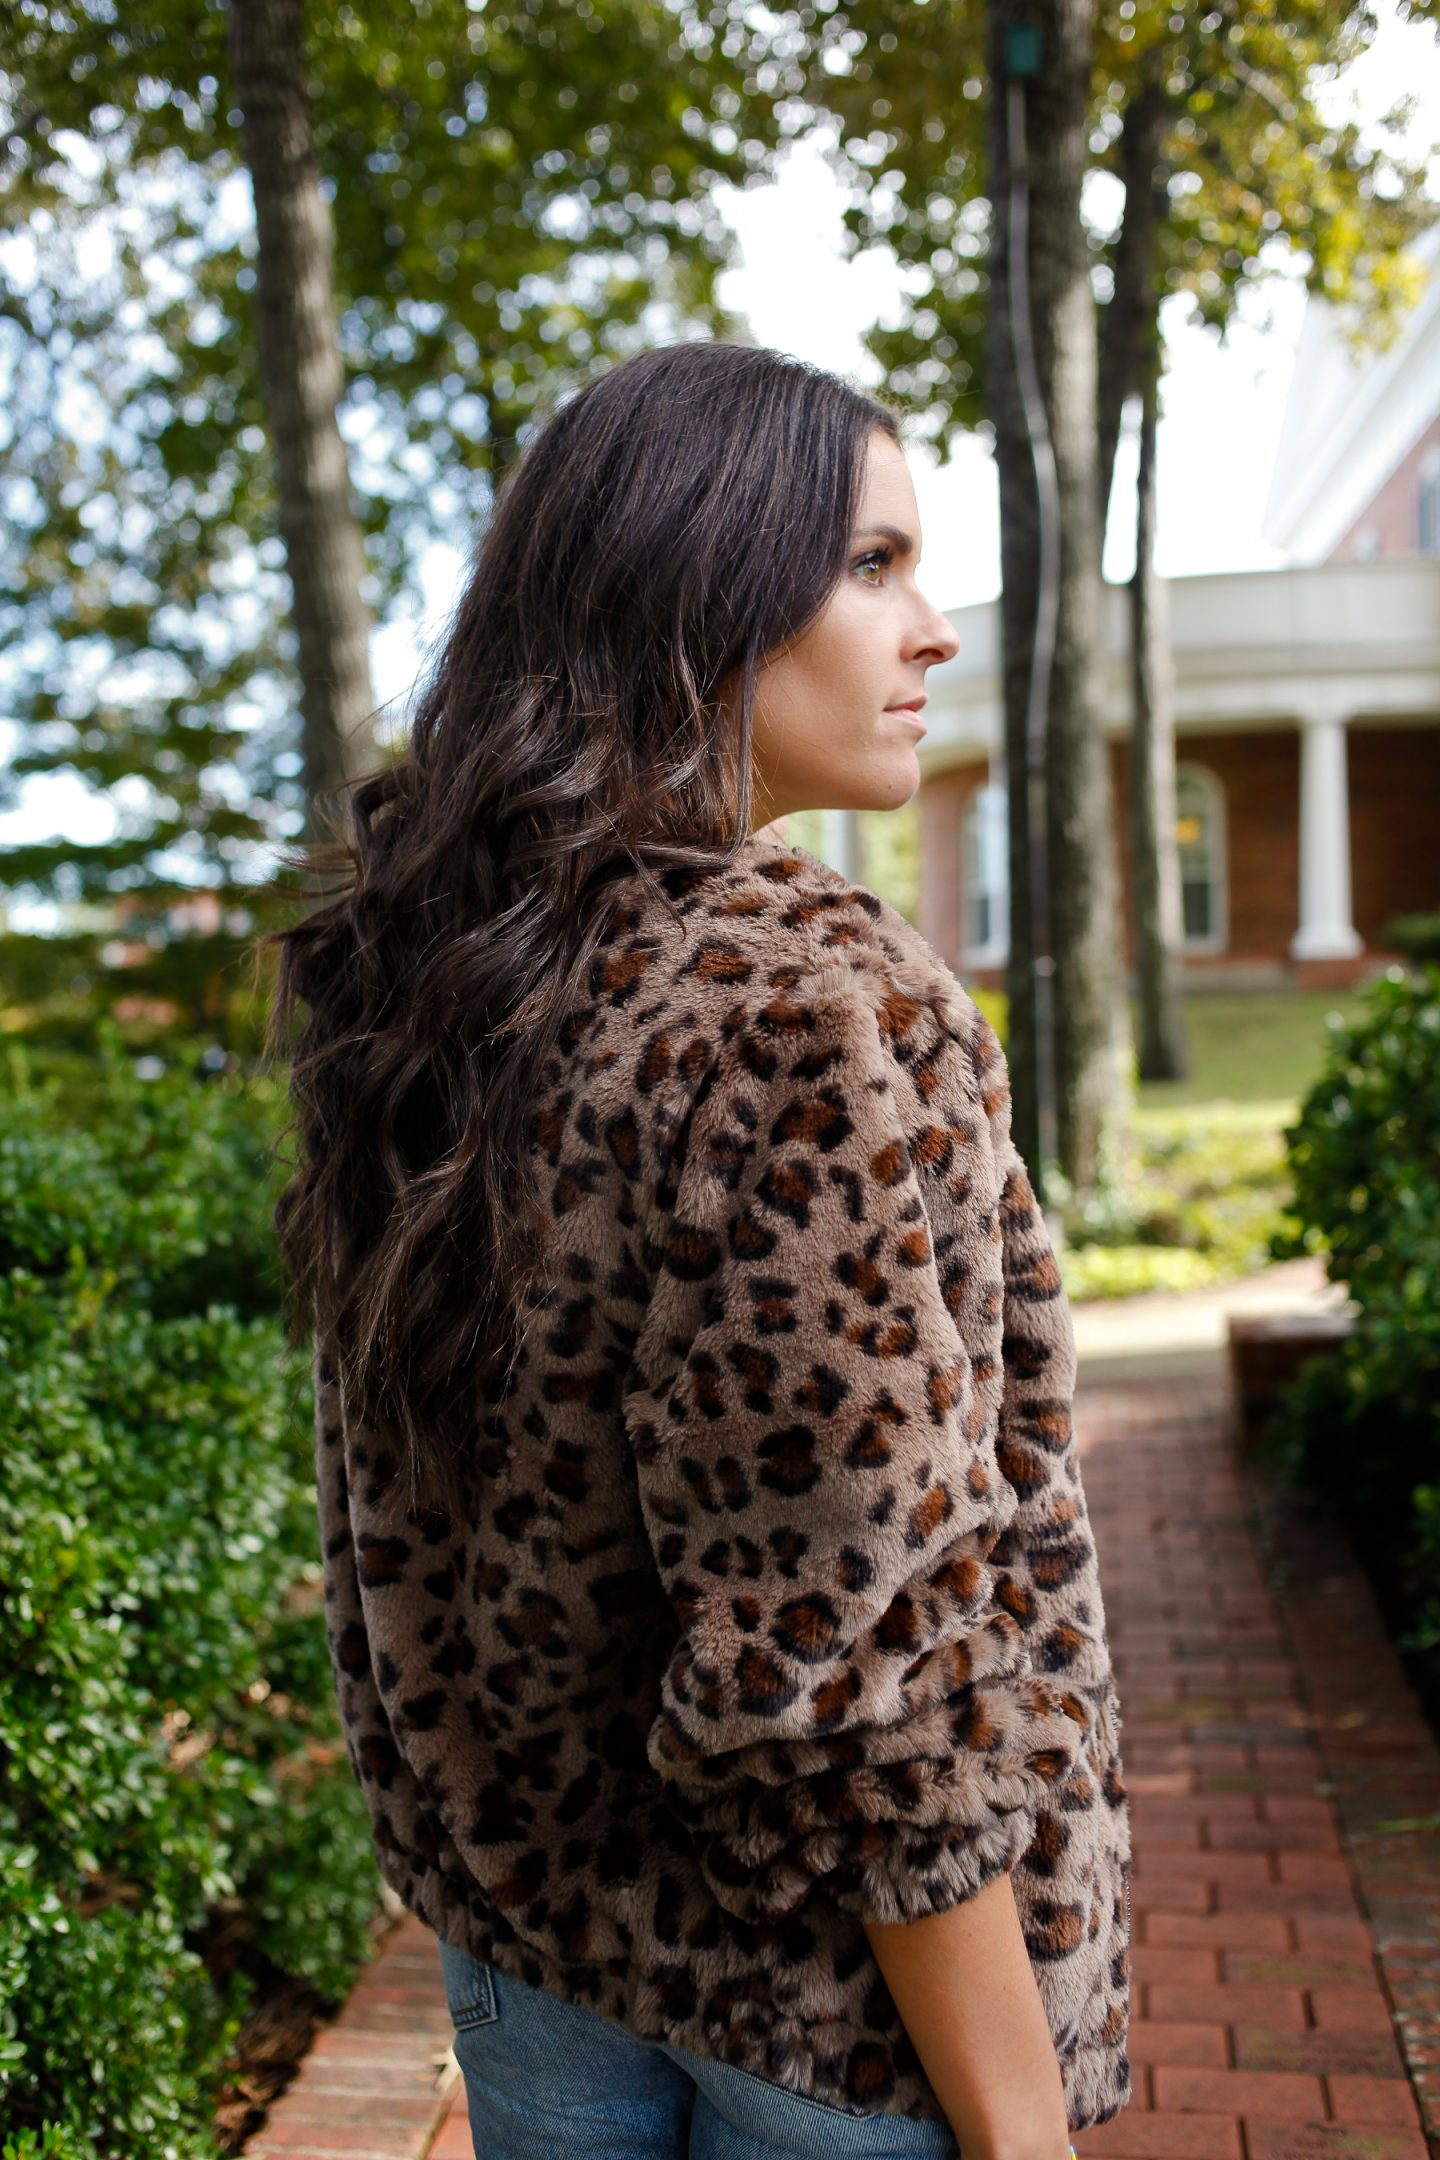 Leopard print as a neutral